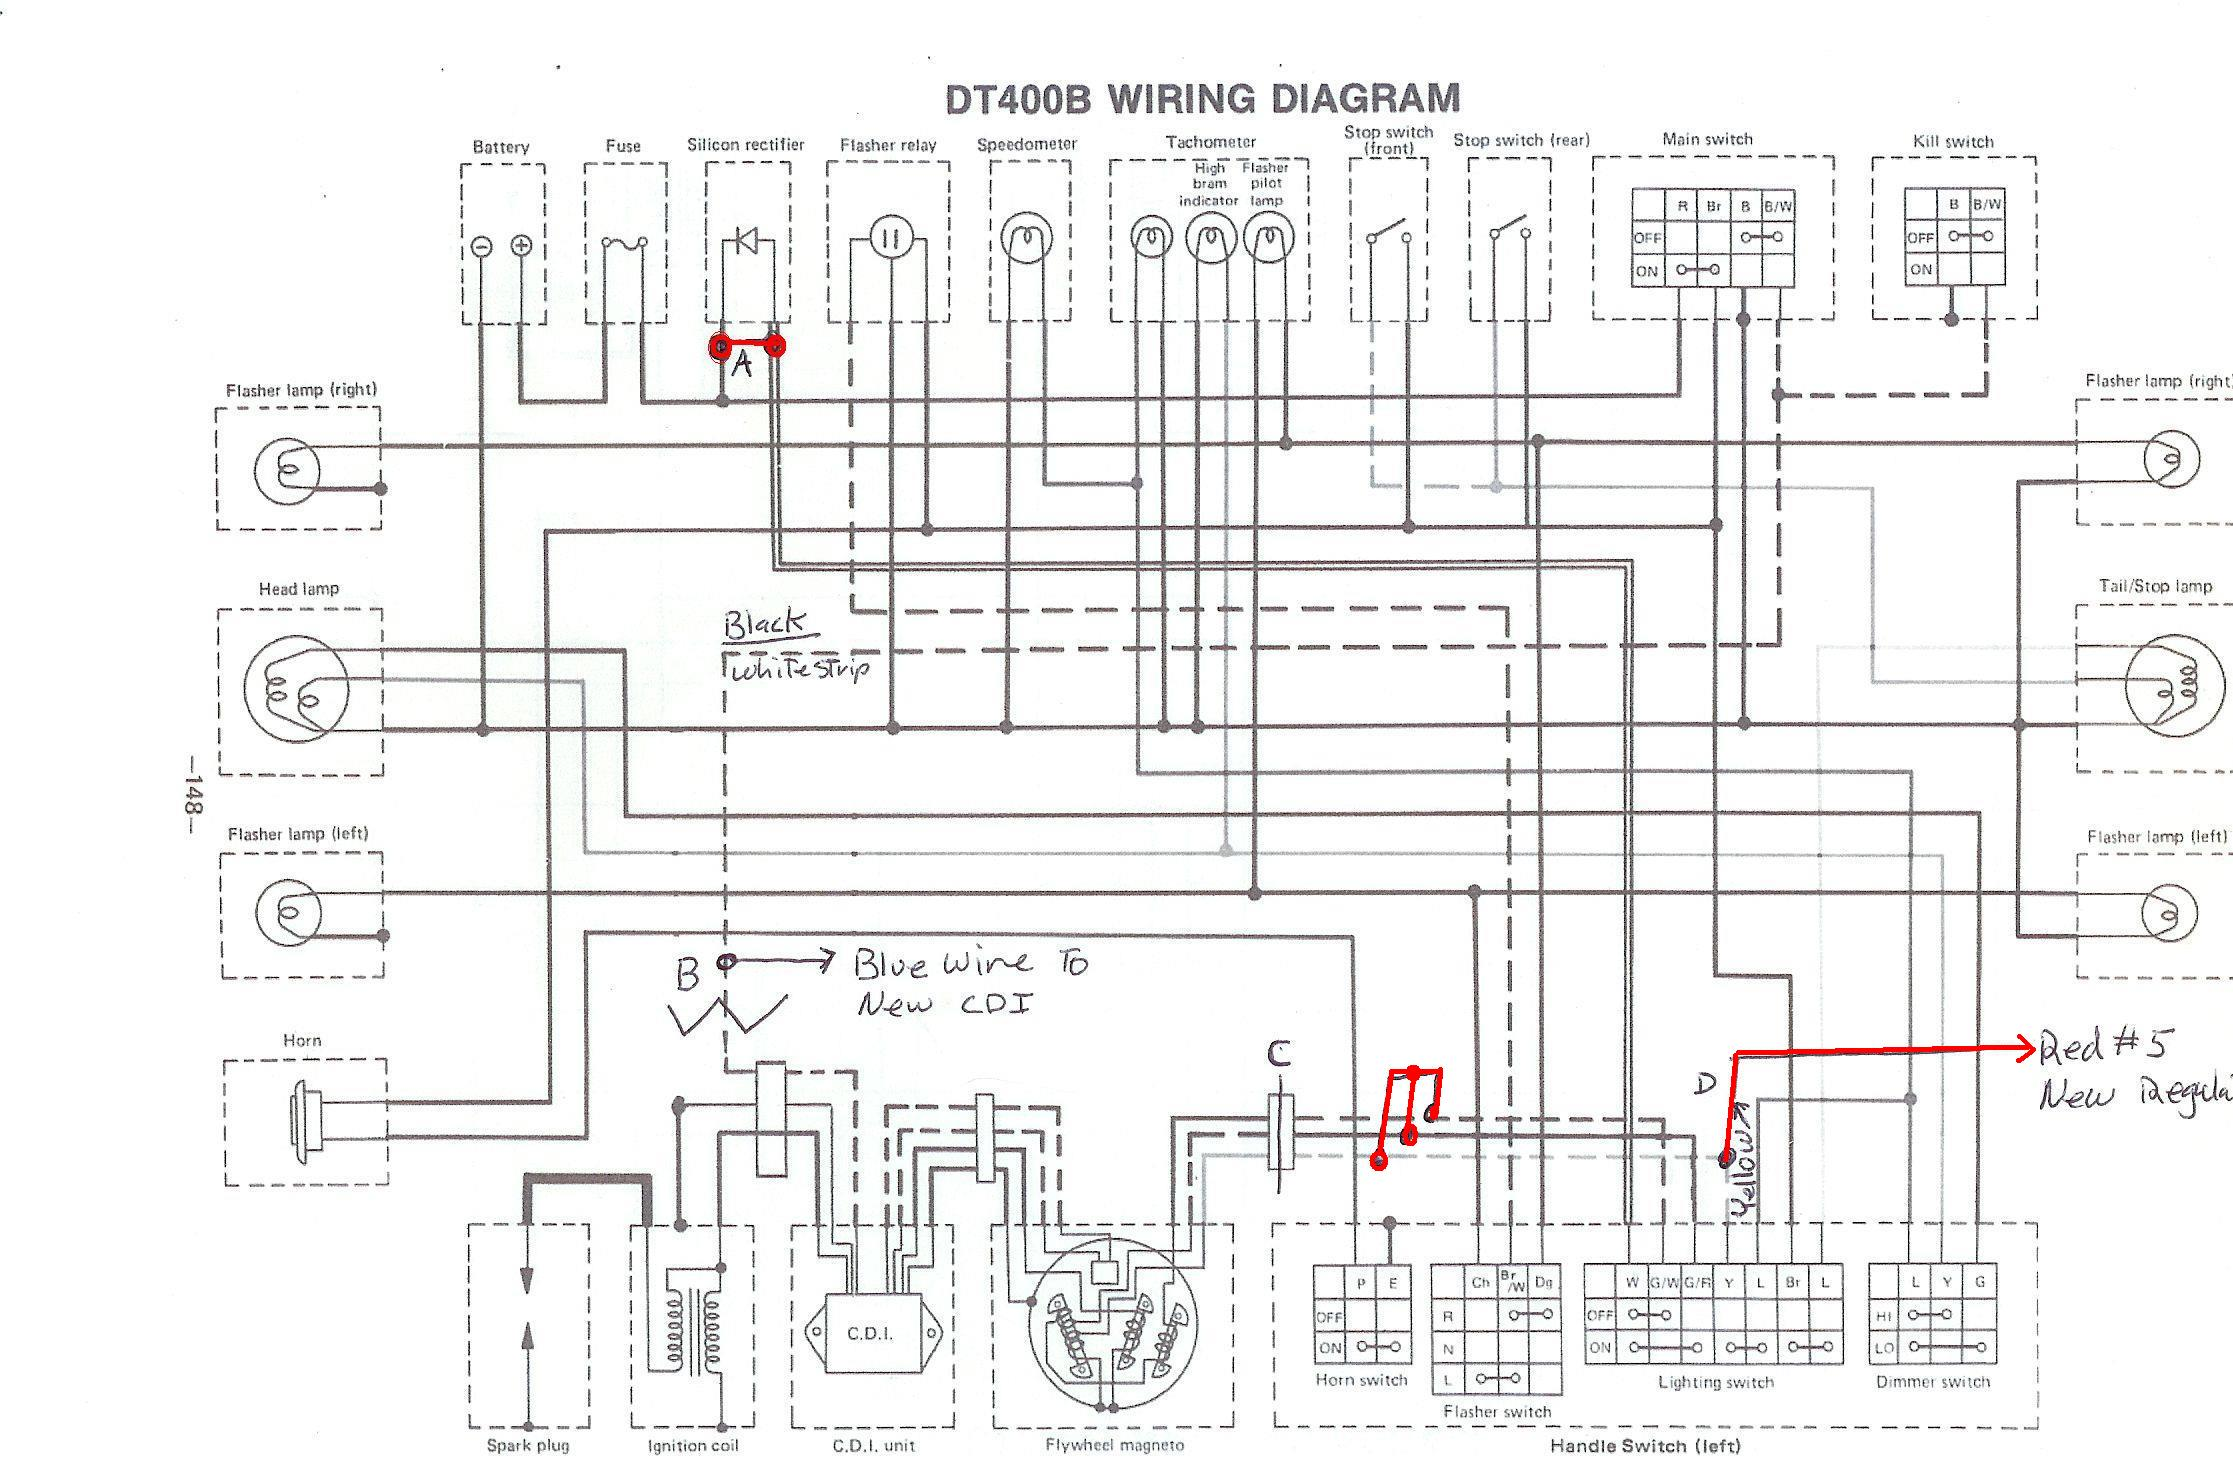 yamaha dt 400 wiring diagram schematics wiring diagrams u2022 rh parntesis co